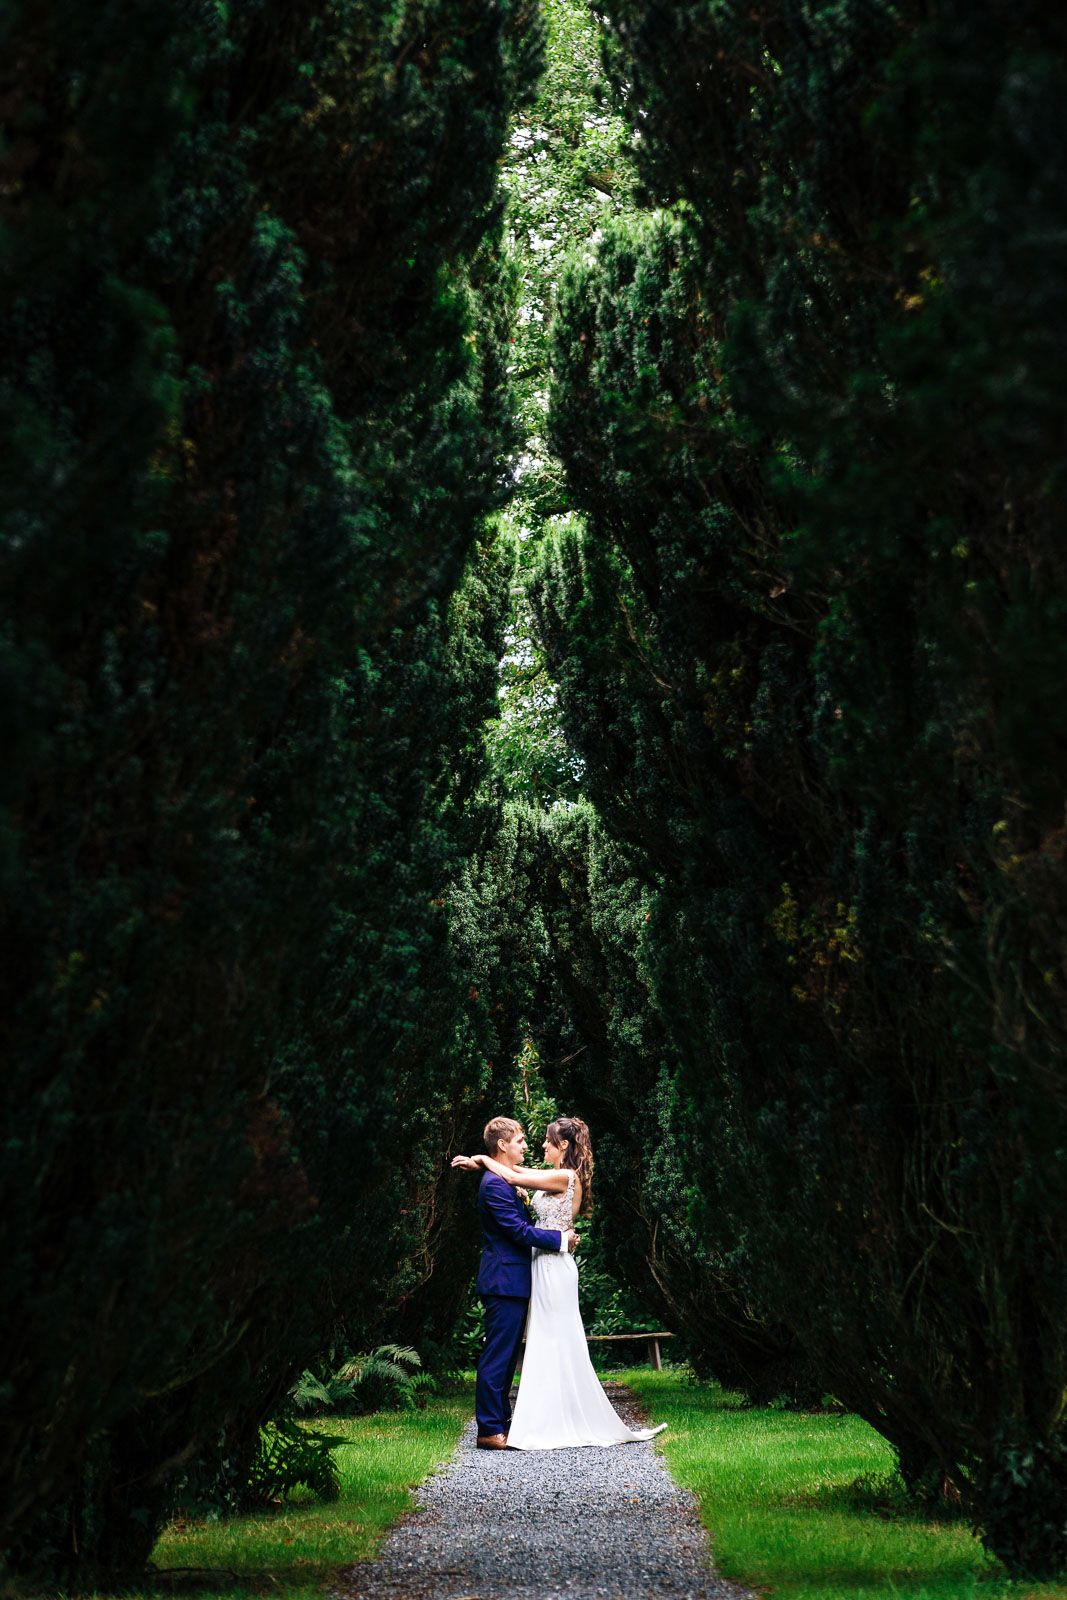 Coombe Trenchard wedding photography by Tuscany based wedding photographer Elizabeth Armitage